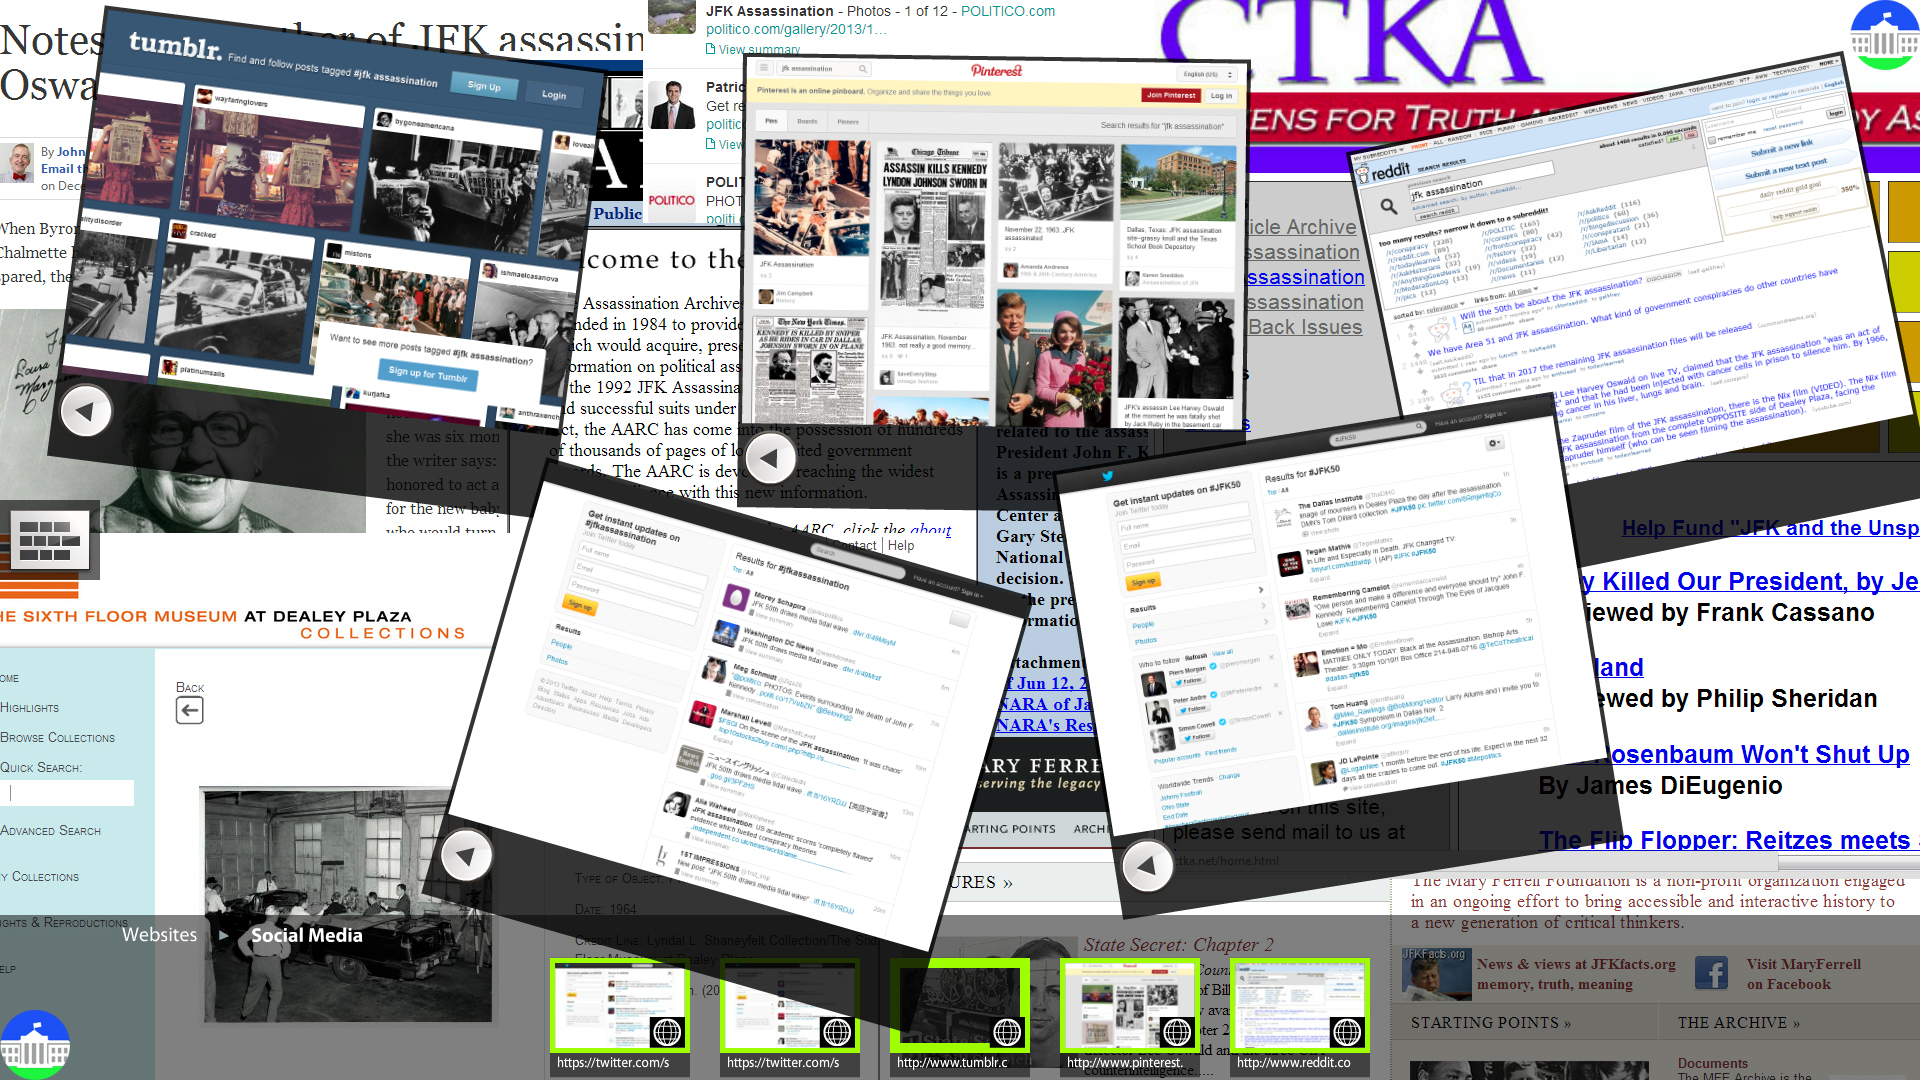 jfk-websites-social-media-omniwall